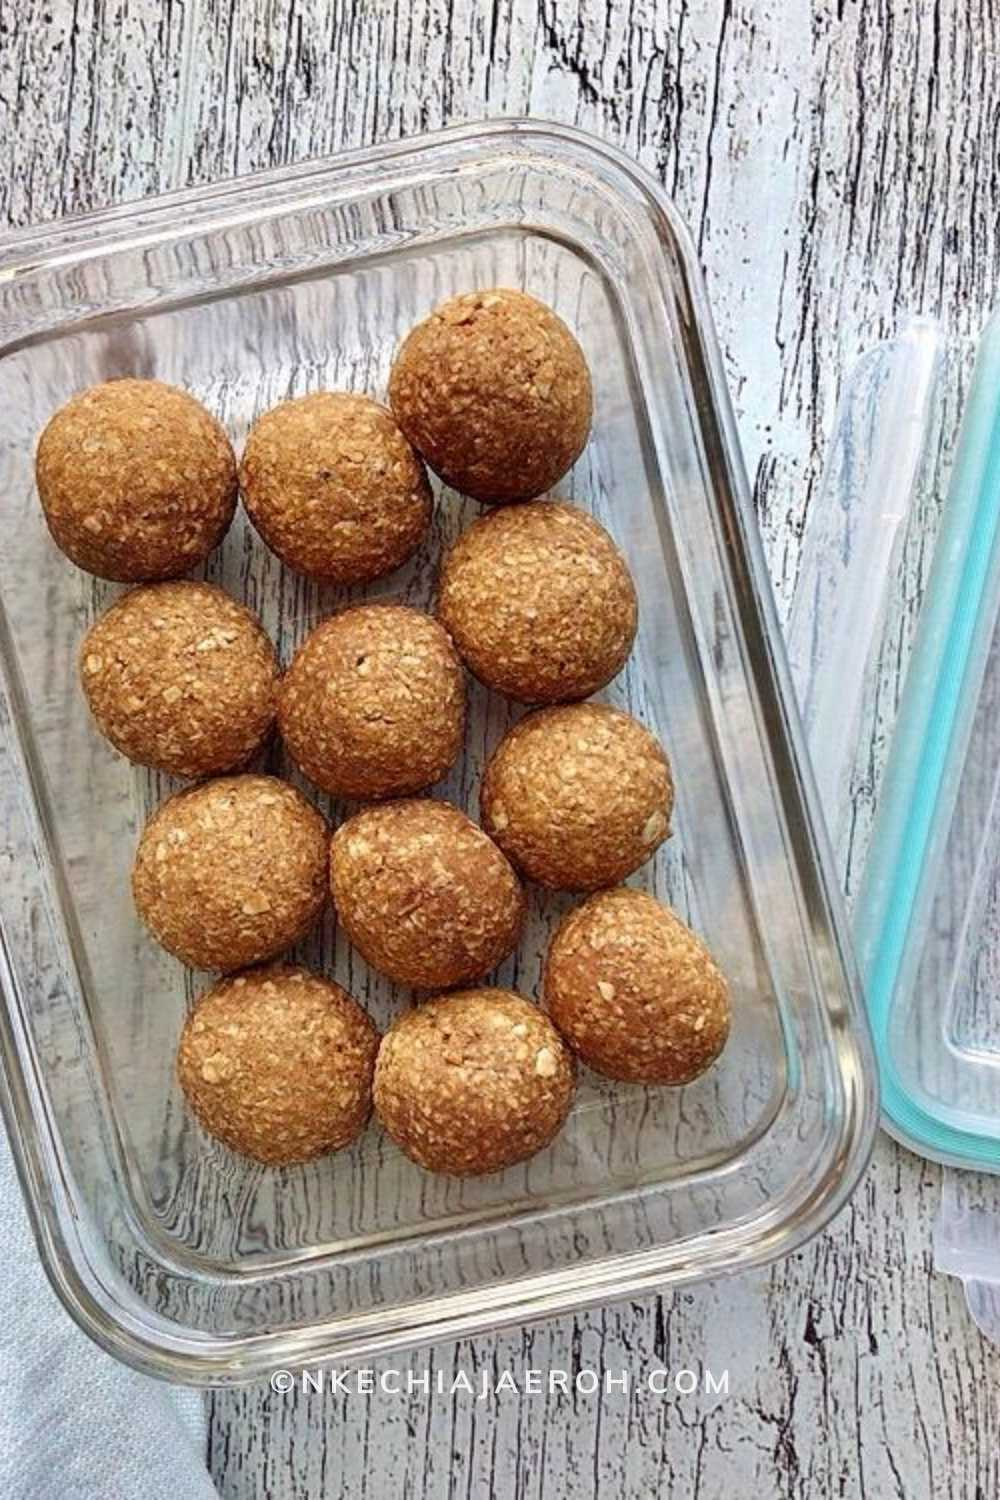 easily pack these plantain balls away for any time snacking! YUM! I used a tight fitting container to pack mine.